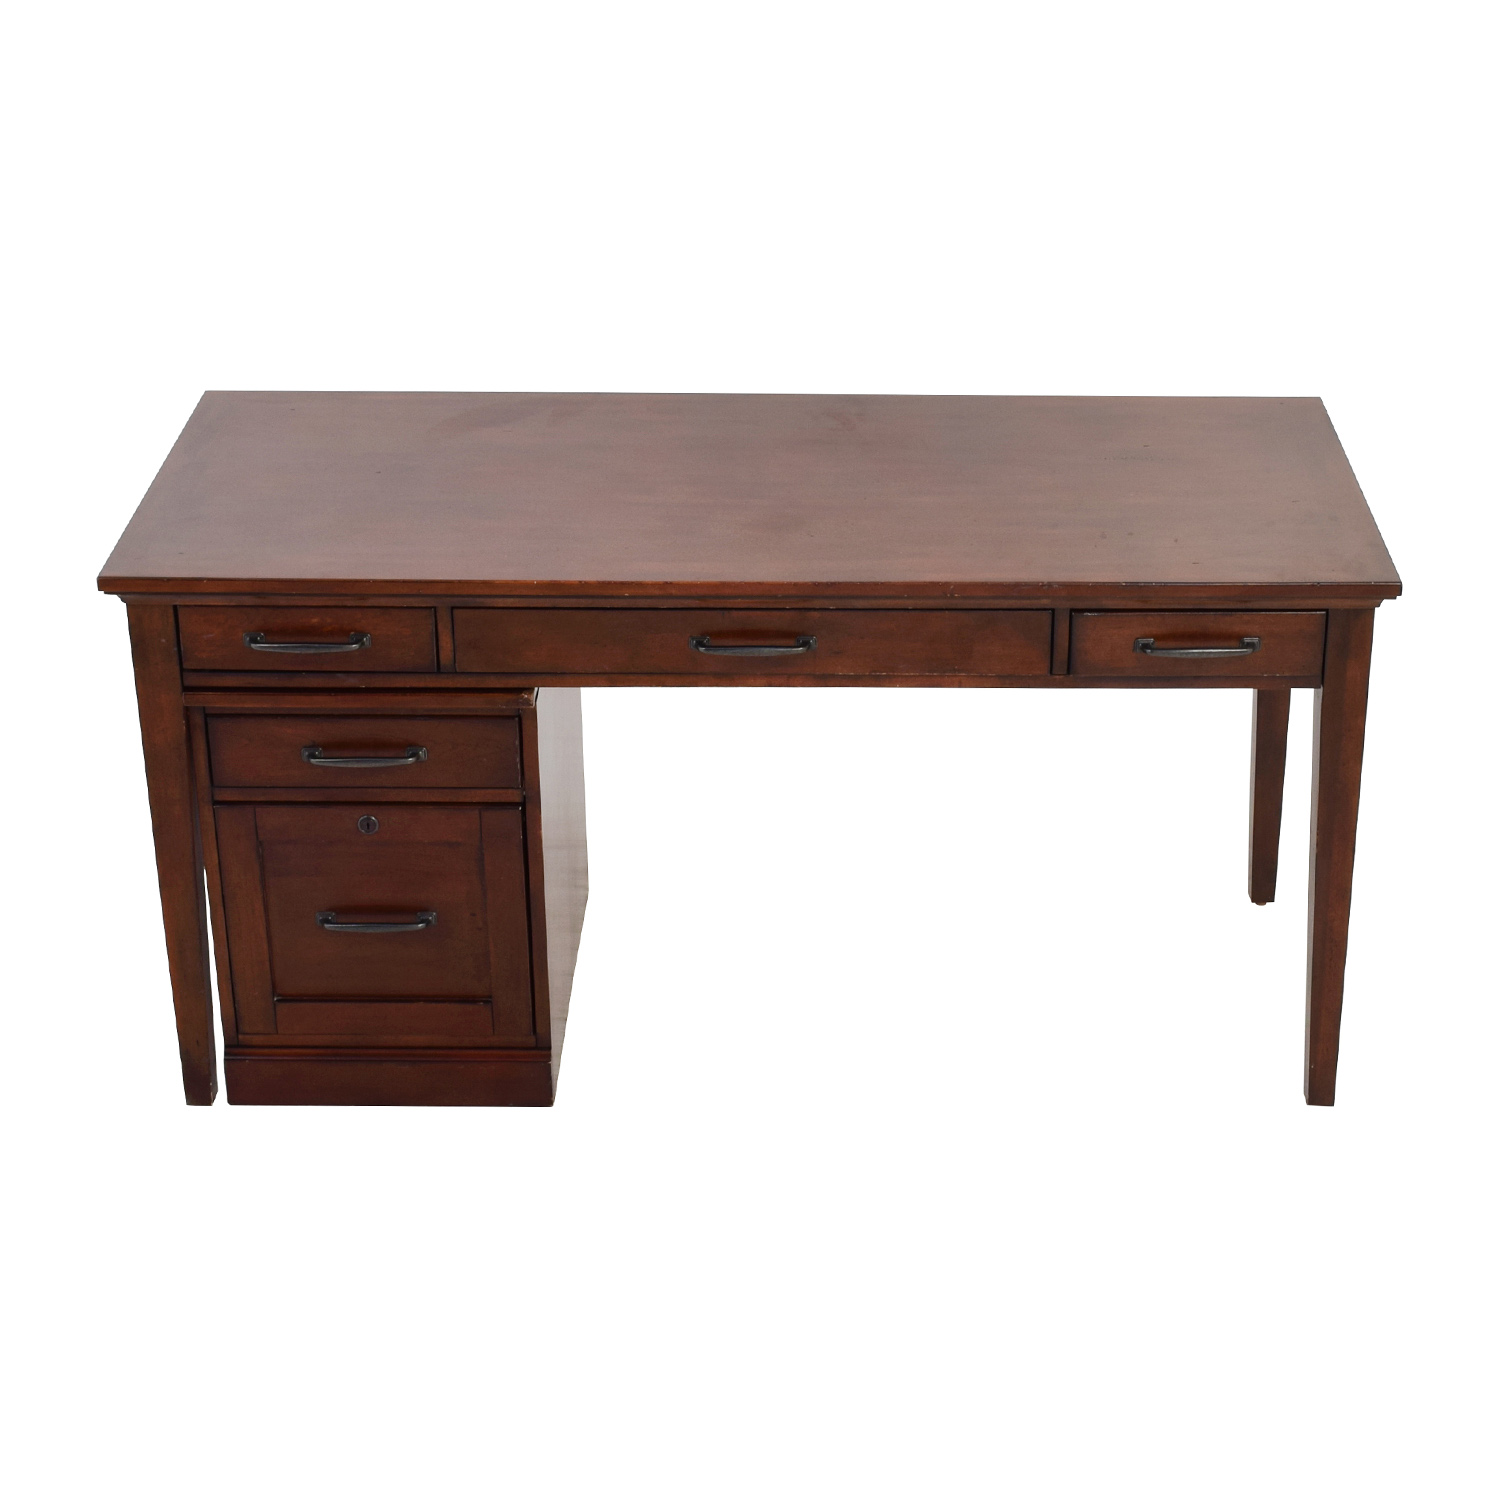 Nebraska Furniture Mart Nebraska Furniture Mart Desk and Rolling File Cabinet Brown